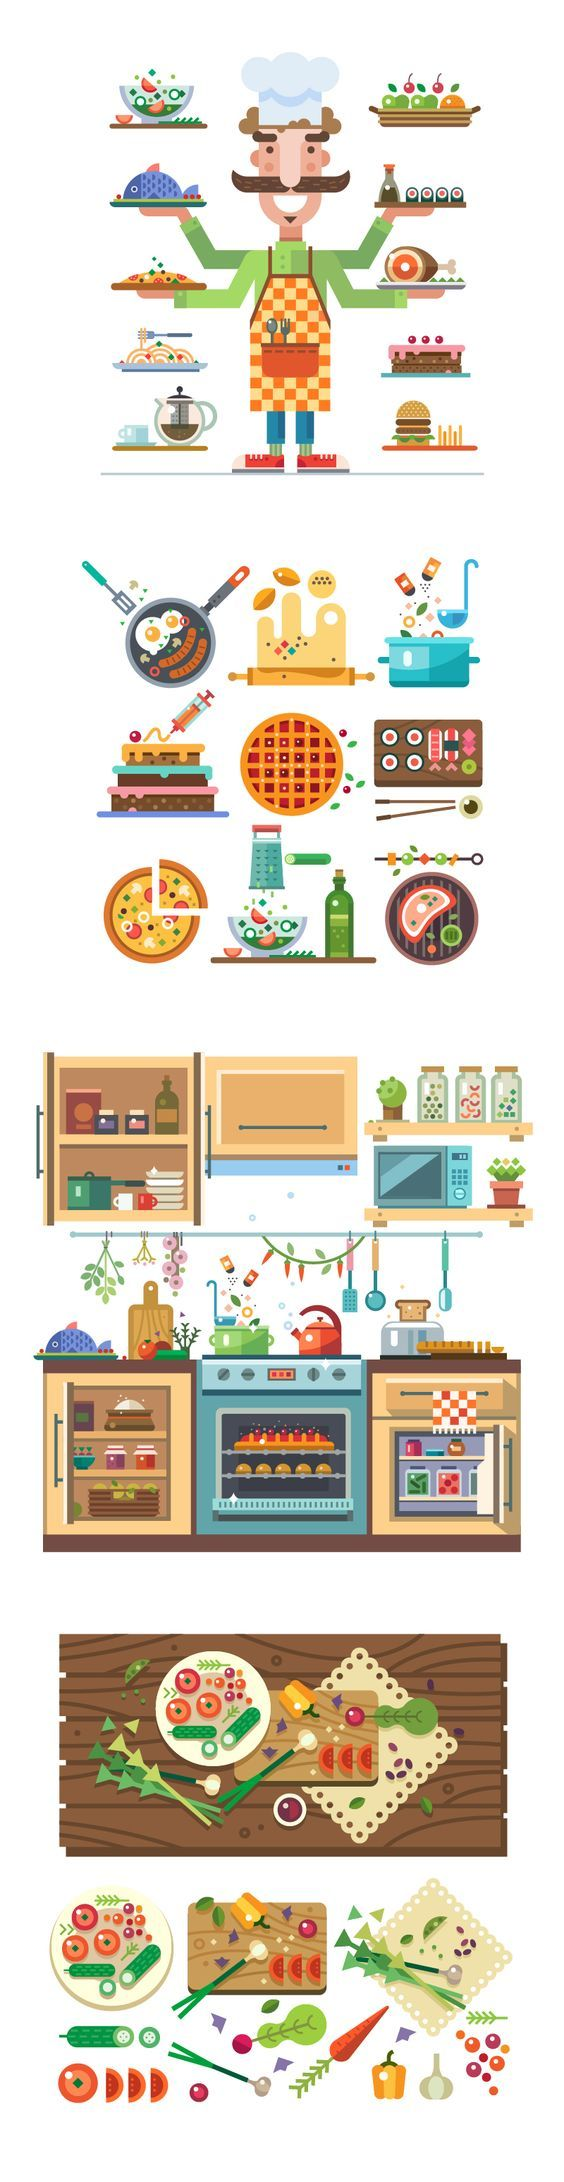 Cozy kitchen: chef with dishes, food in cooking process, interior of kitchen, table with vegetables. Vector flat illustration and icon set: